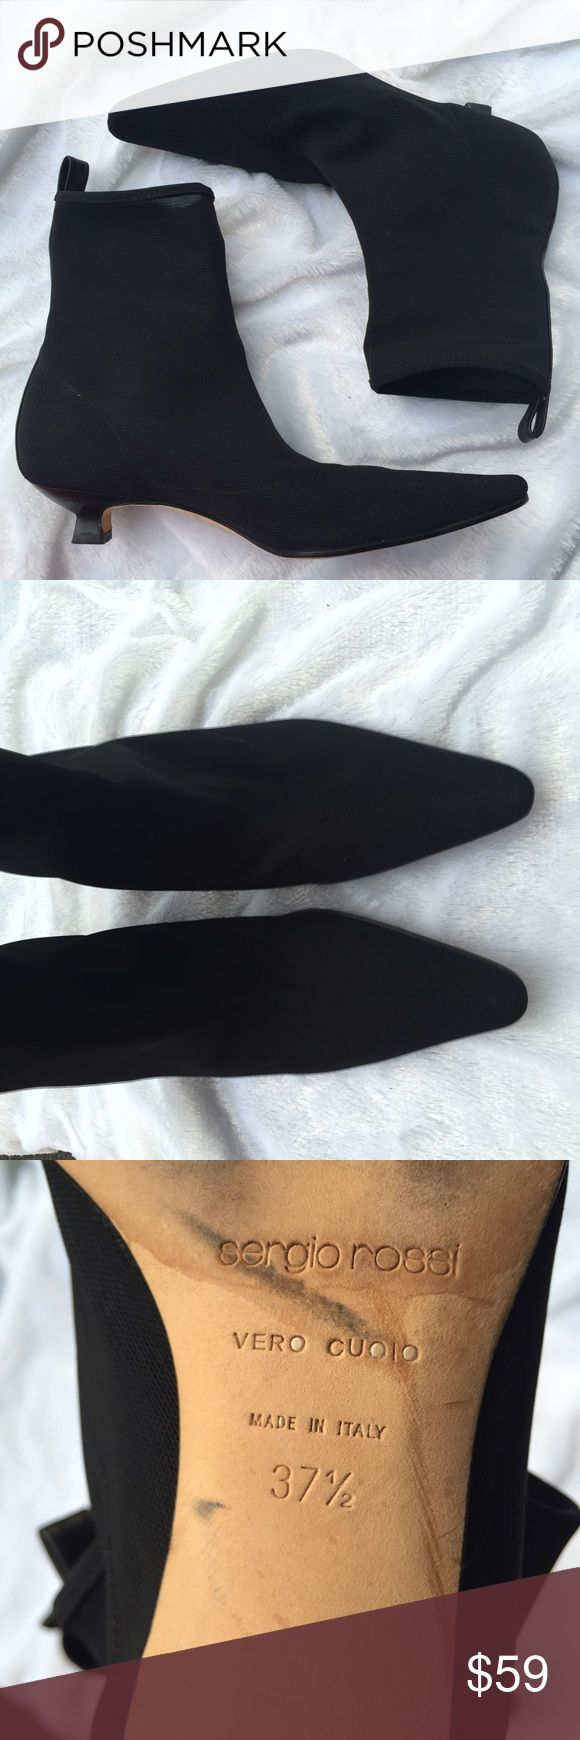 "Sergio Rossi black booties kitten heel 7.5 Terrific condition. Stretch fabric upper, leather trim, insole and sole. Mod, flawless and cute af. 37 1/2 which I believe is us 7 in this designer. 1.25"" heel. Sergio Rossi Shoes Ankle Boots & Booties"